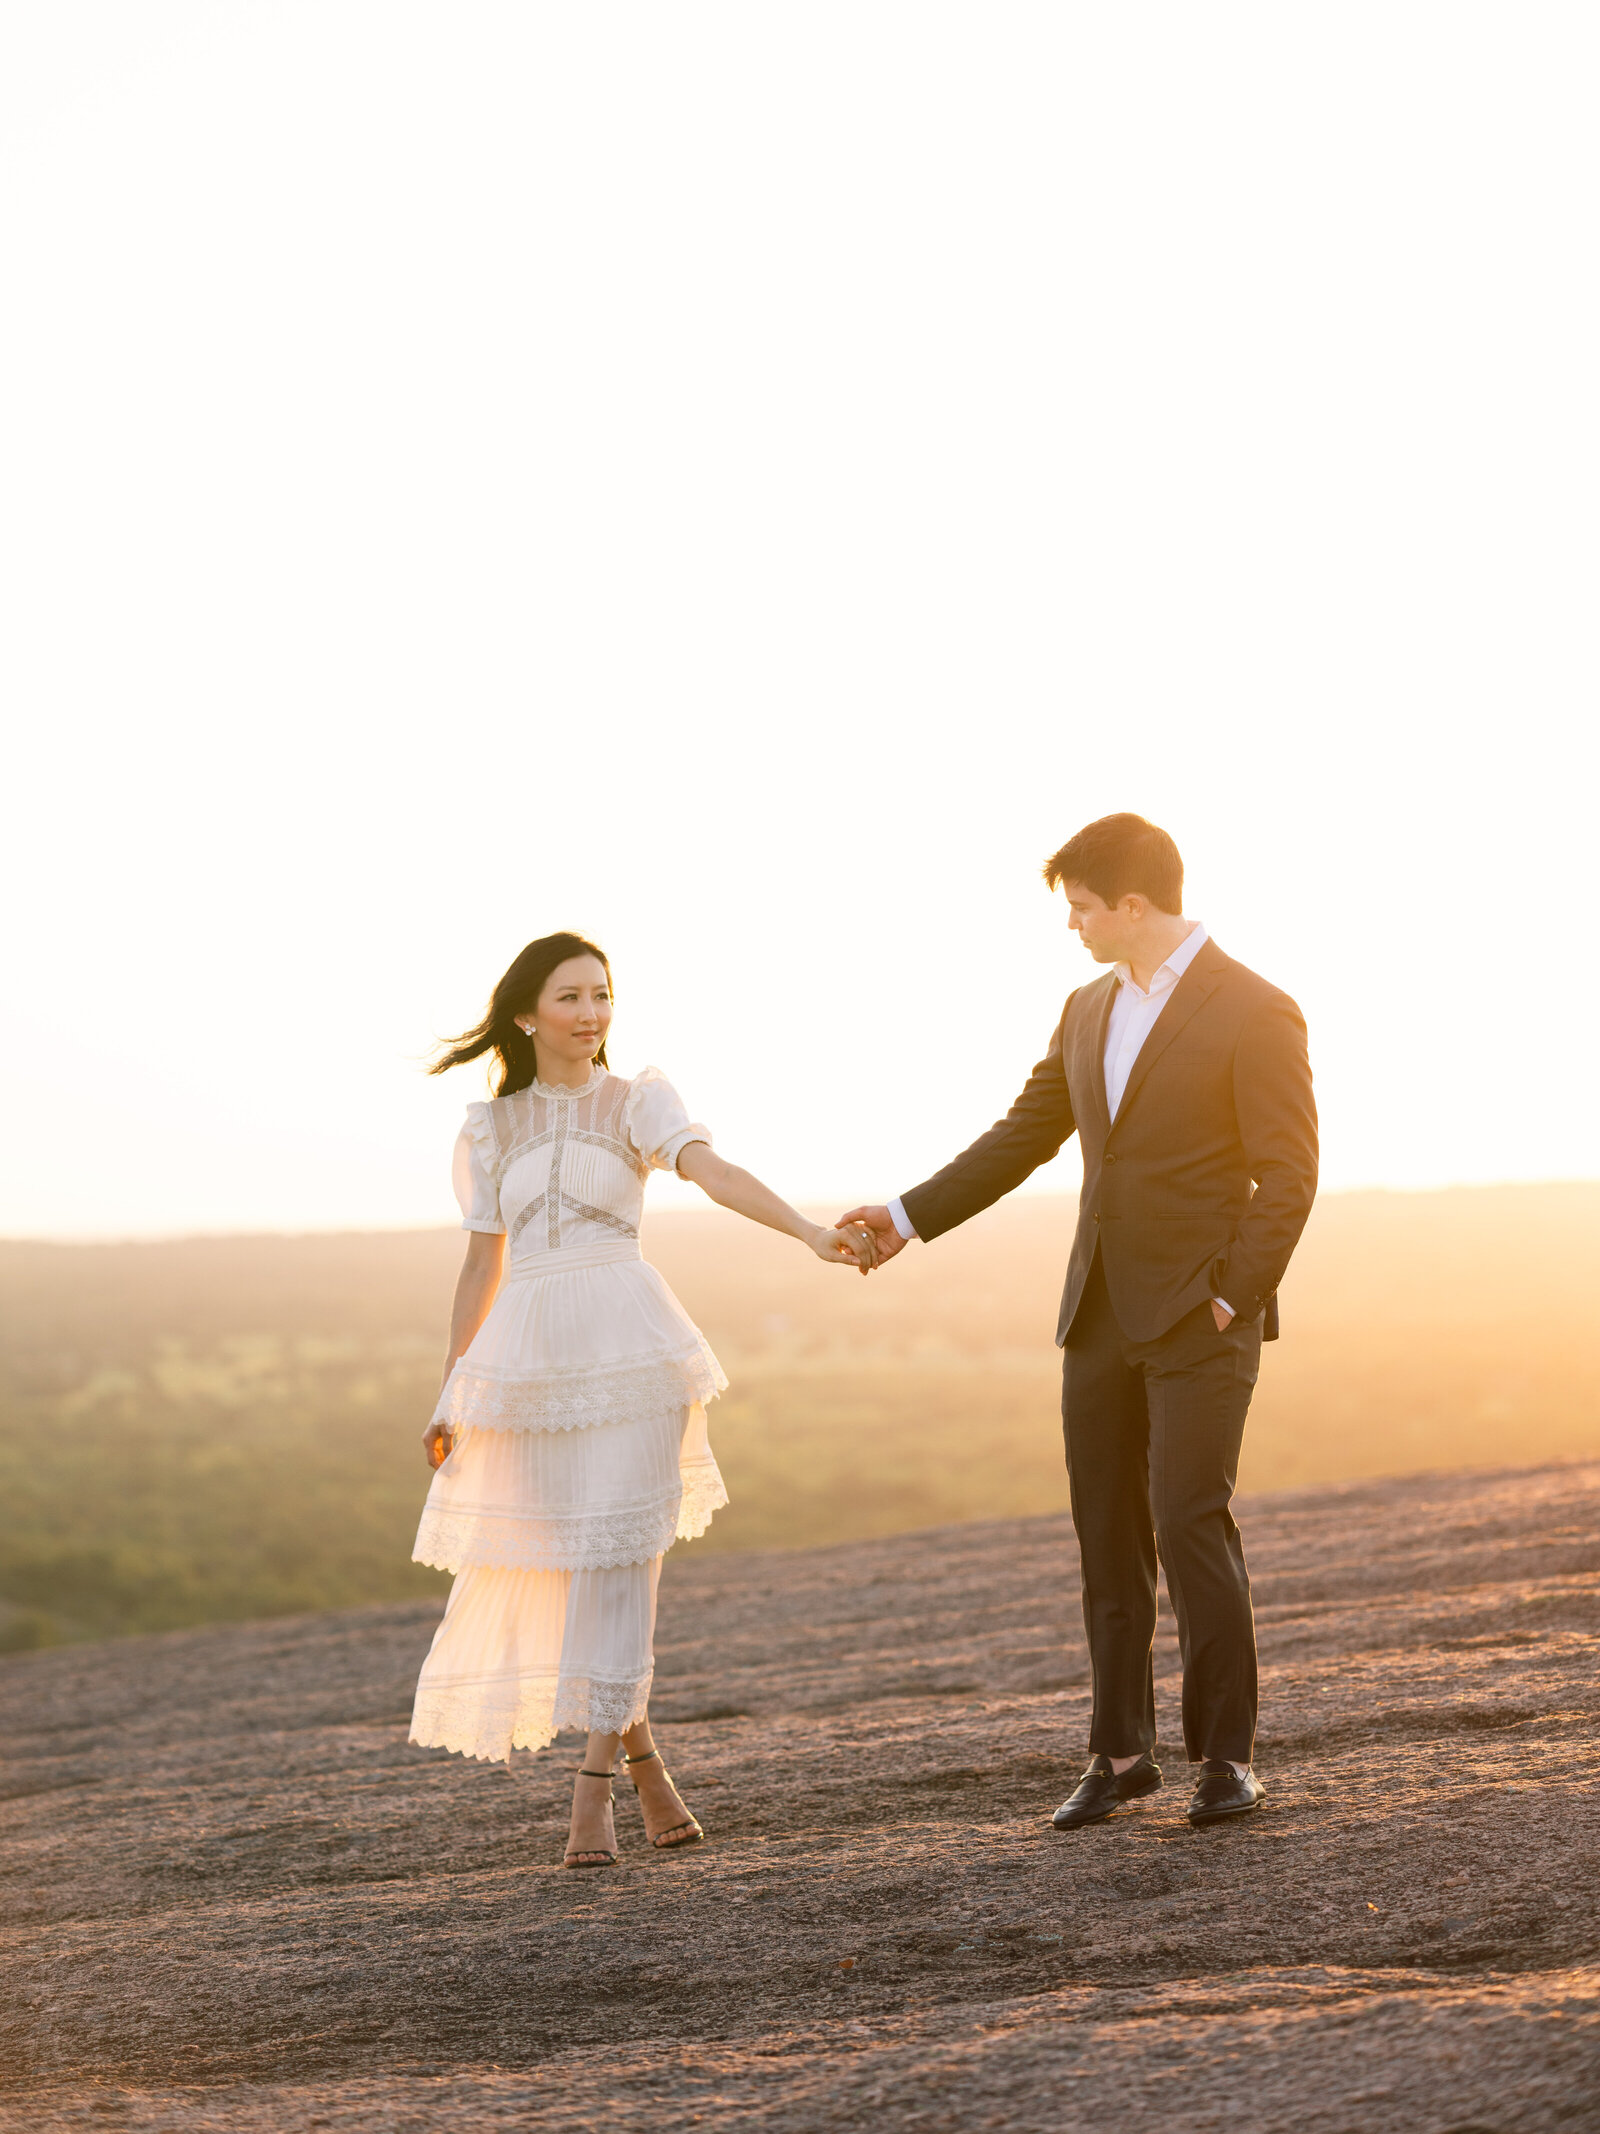 Stephania_EngagementPhotography (6)